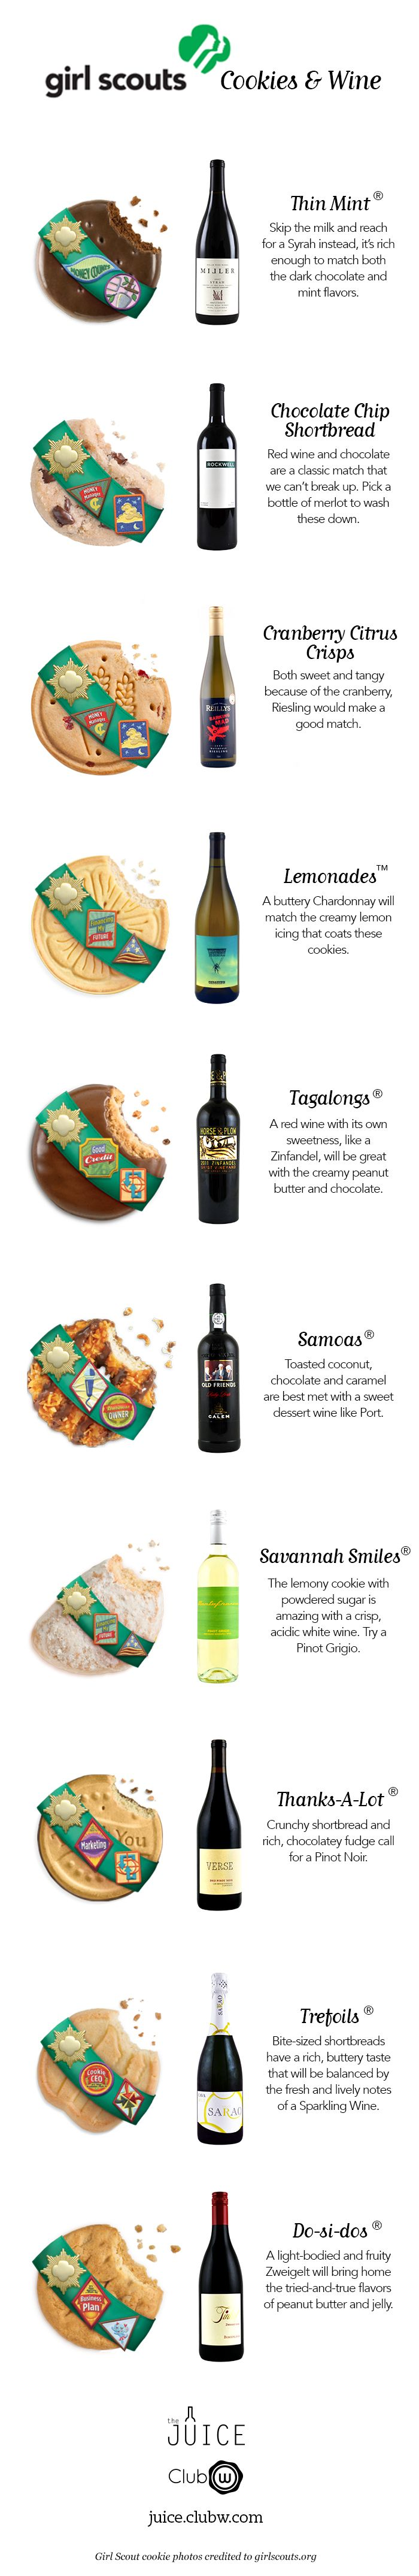 100 best images about wine pairings on pinterest cheese